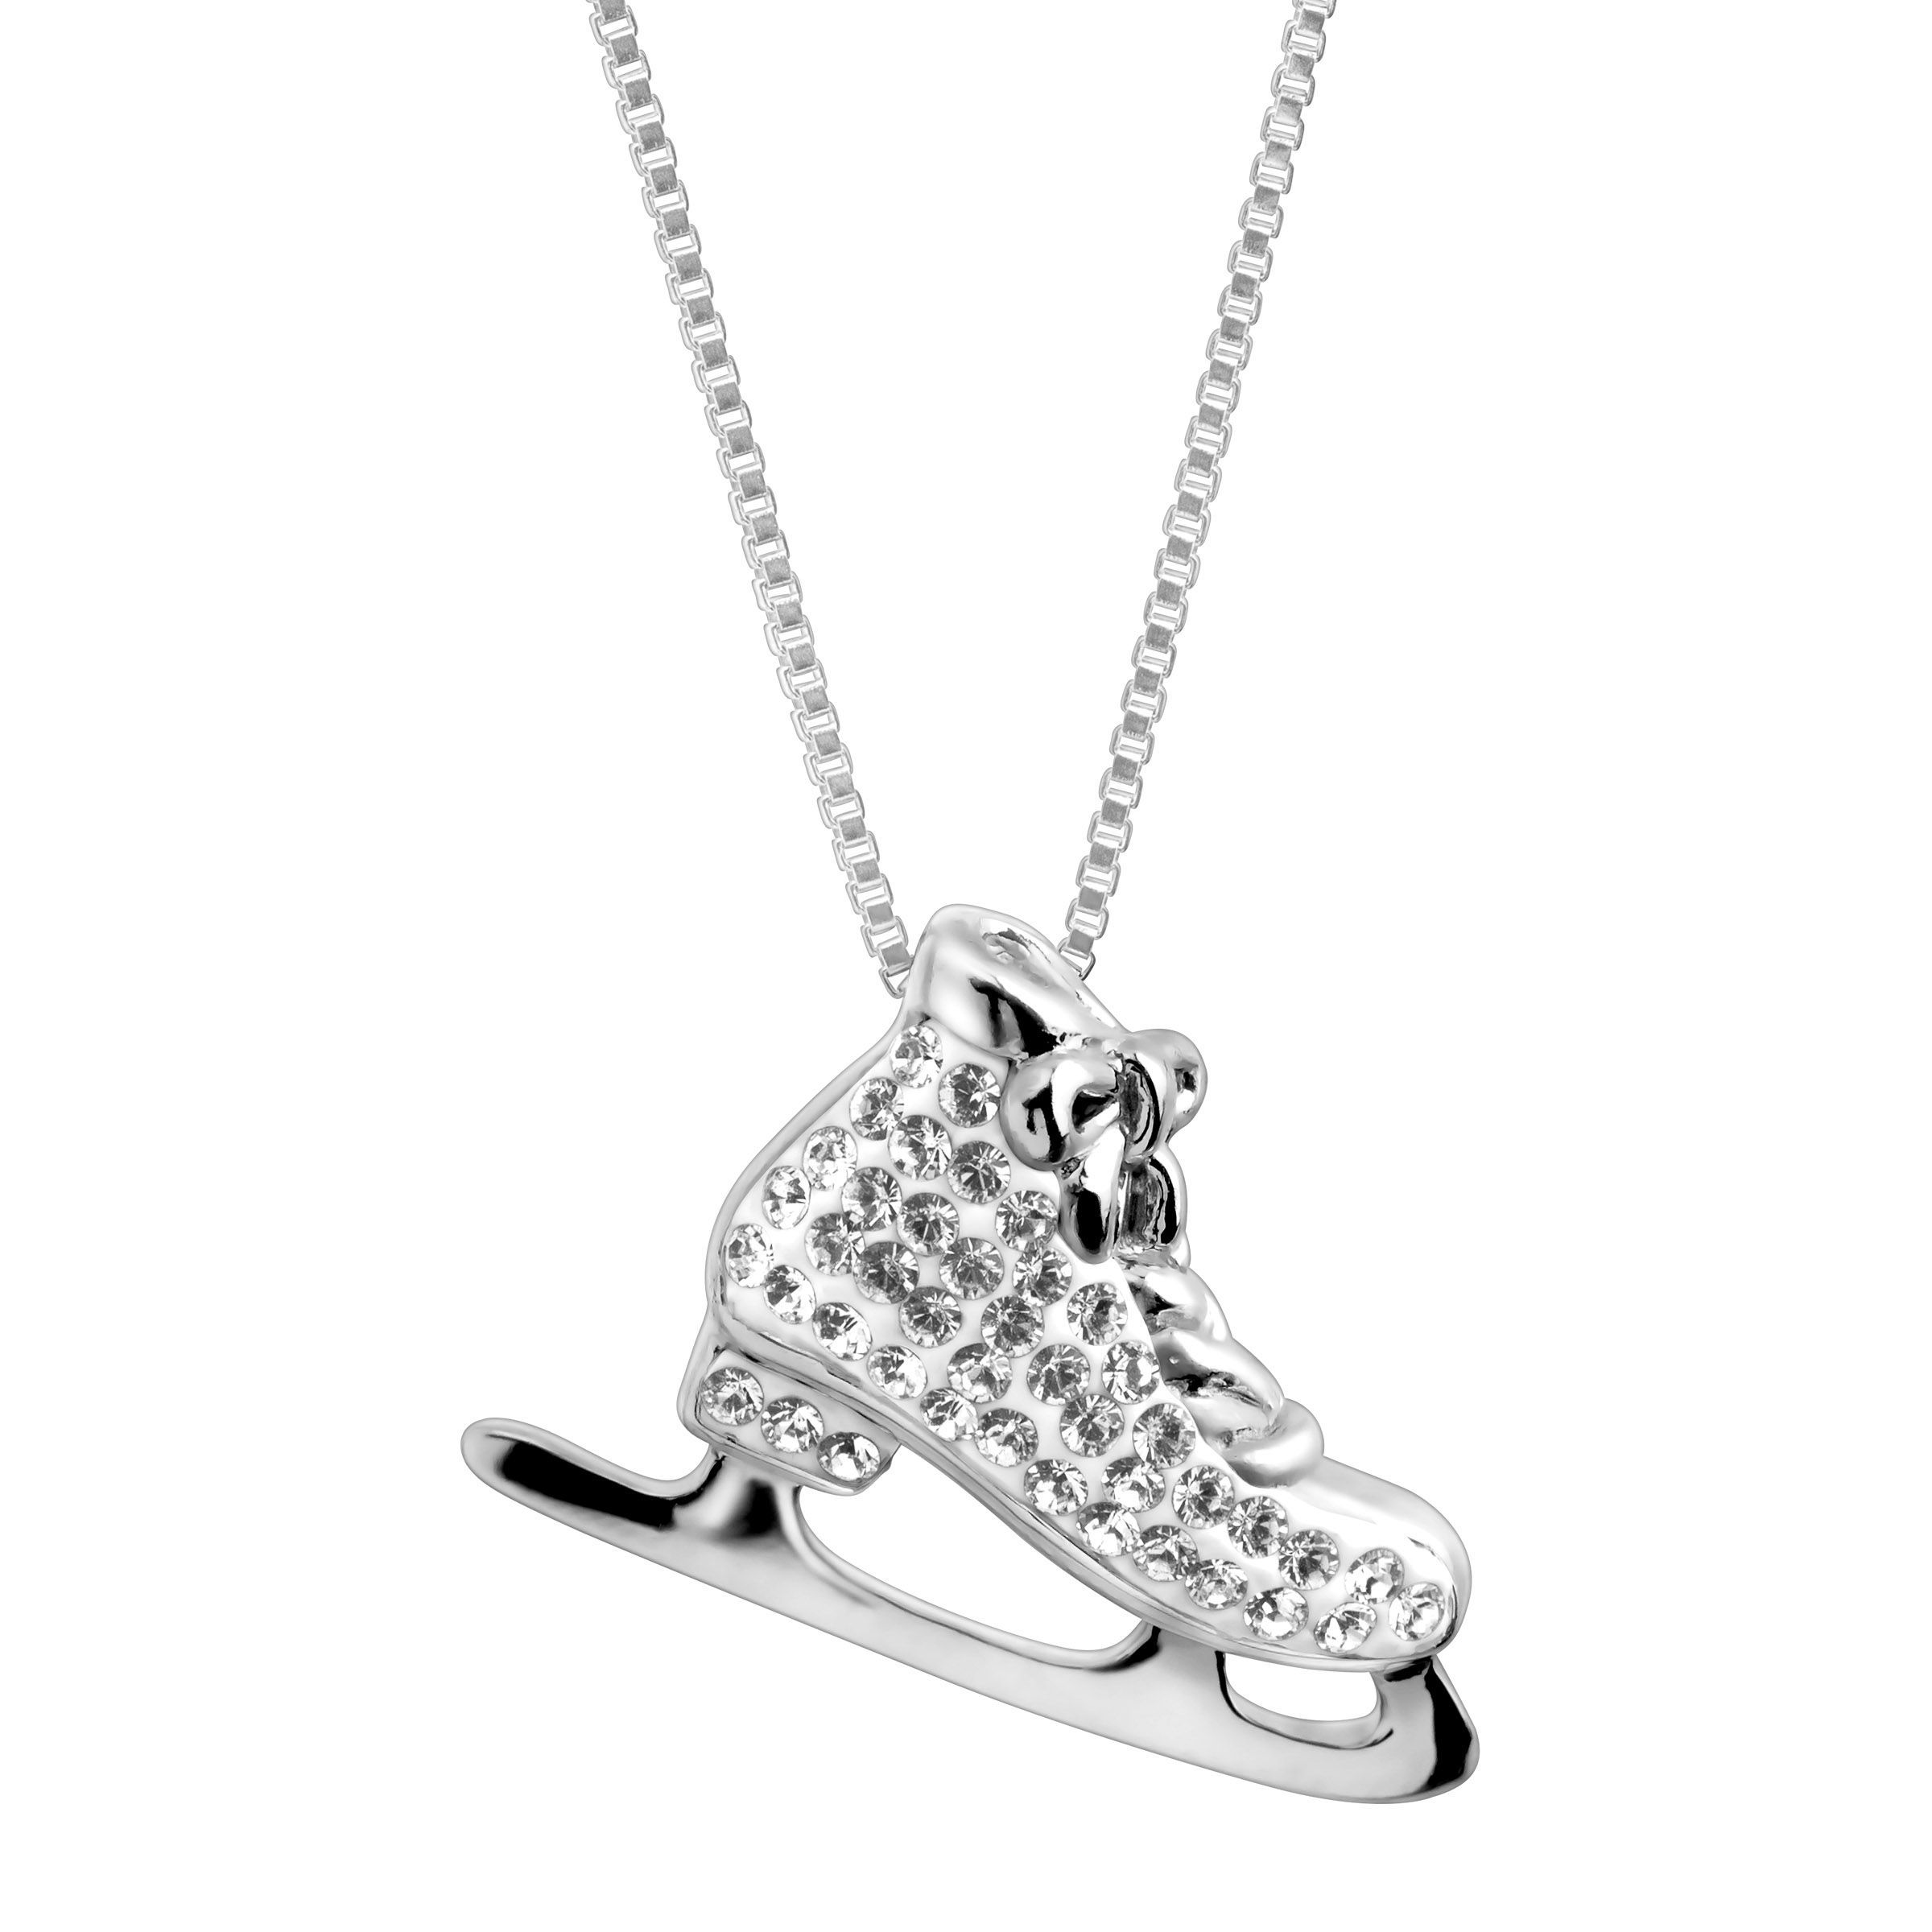 Crystaluxe Ice Skate Pendant With Swarovski Crystals In